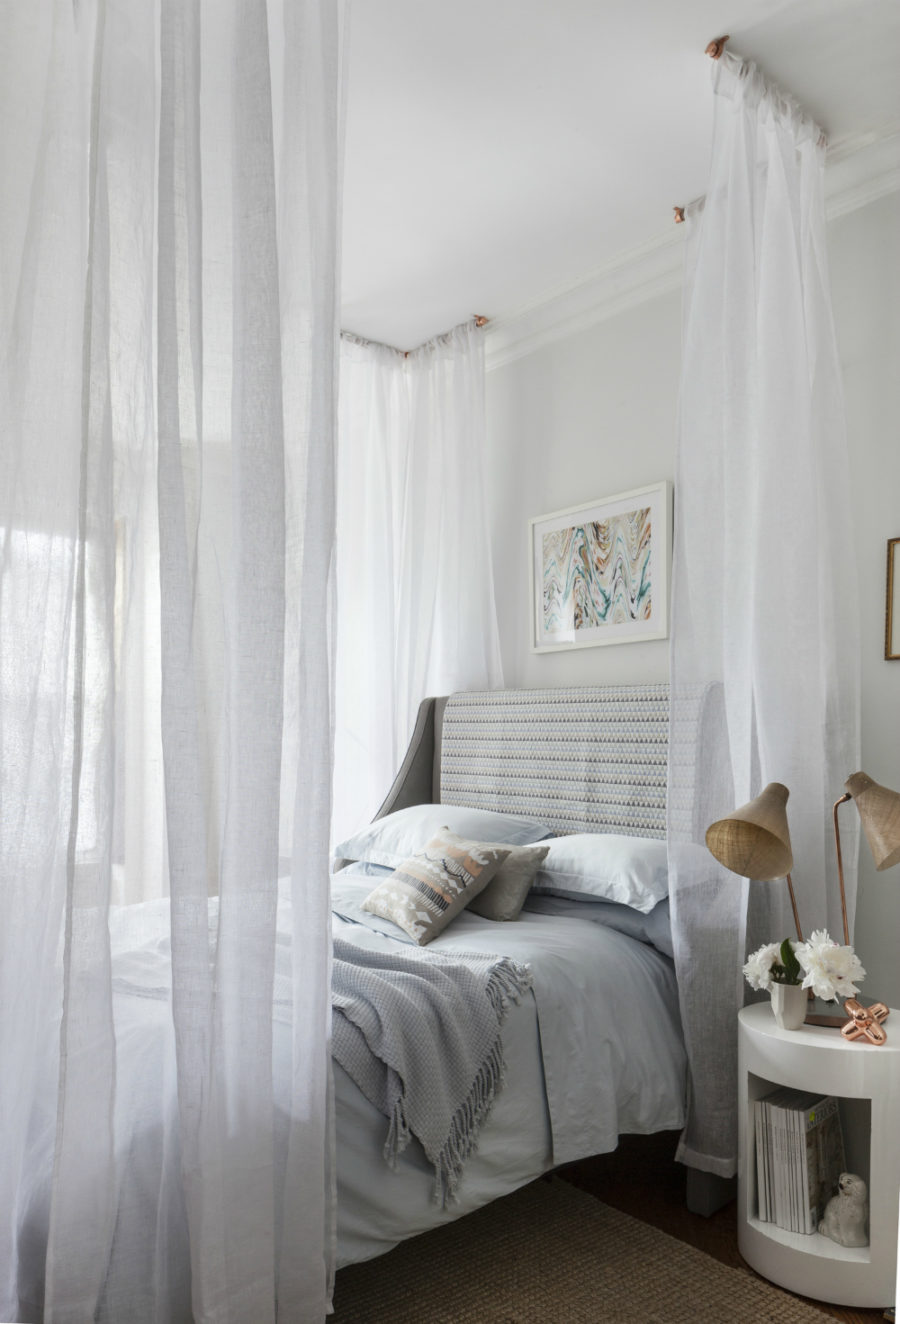 Best View in gallery Sophisticated canopy bed